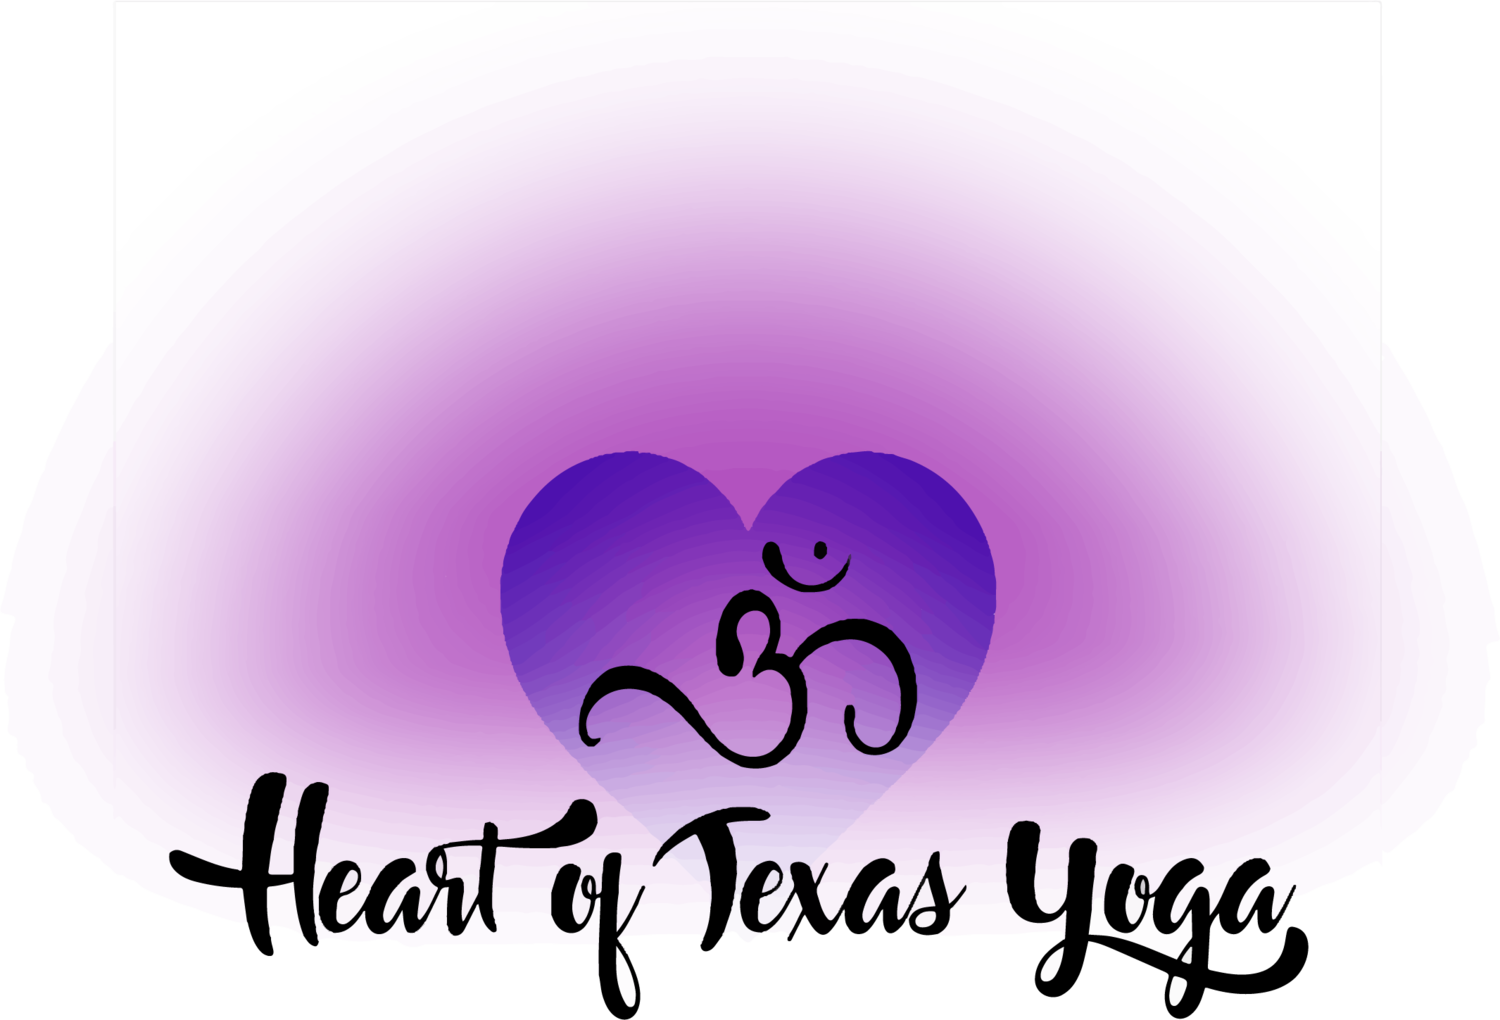 Heart of Texas Yoga